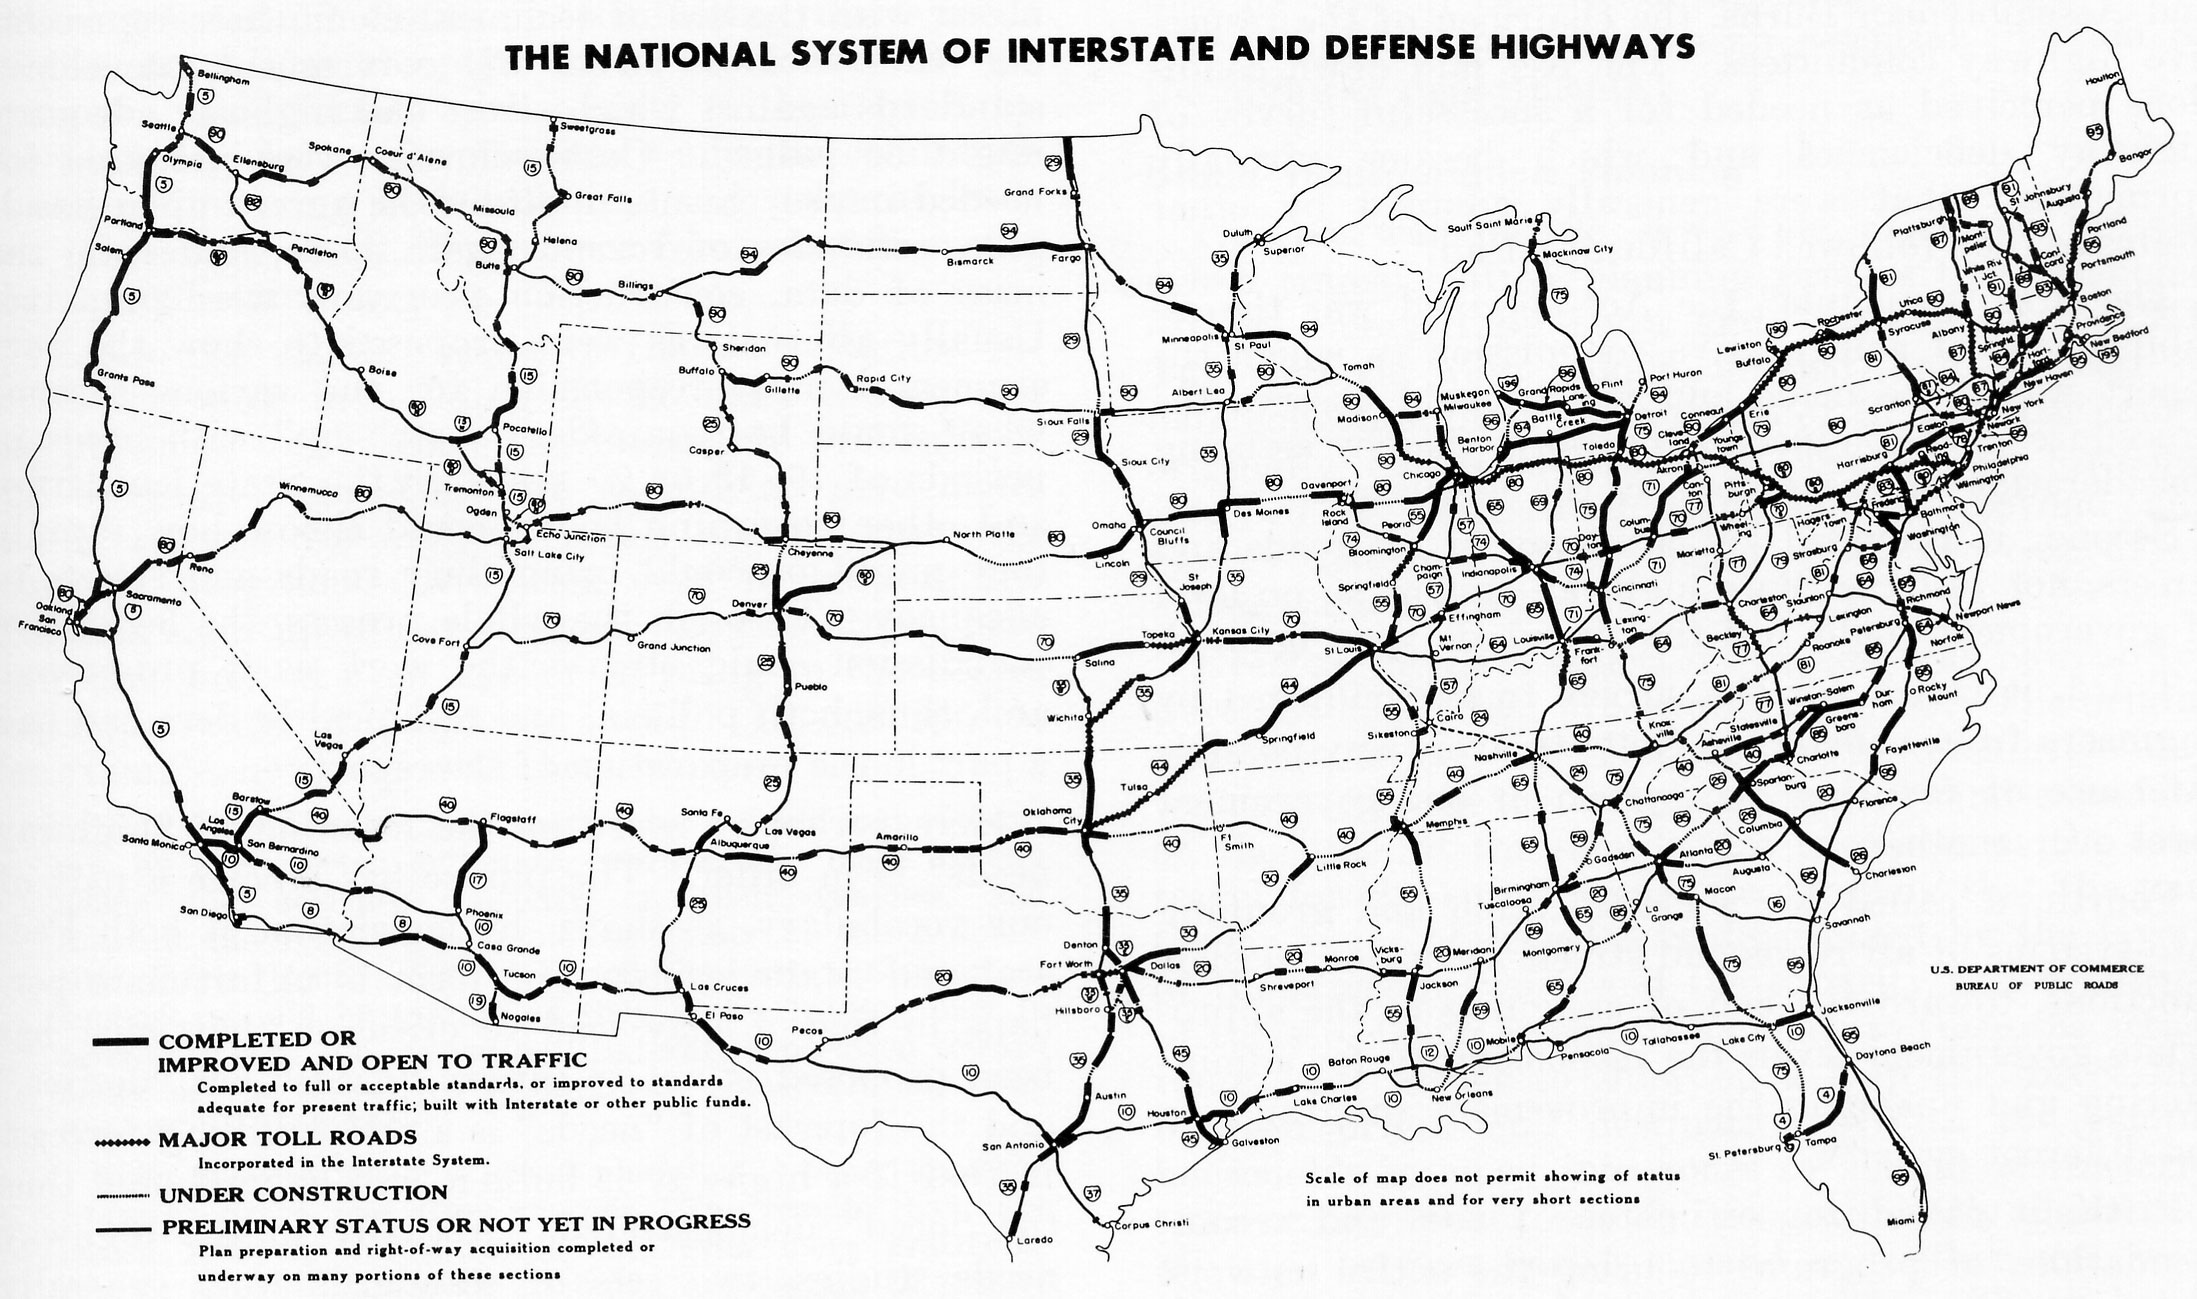 USA Interstate Highways Map Interstate Highways Map Of USA Us - Map of the us including interstates and major cities